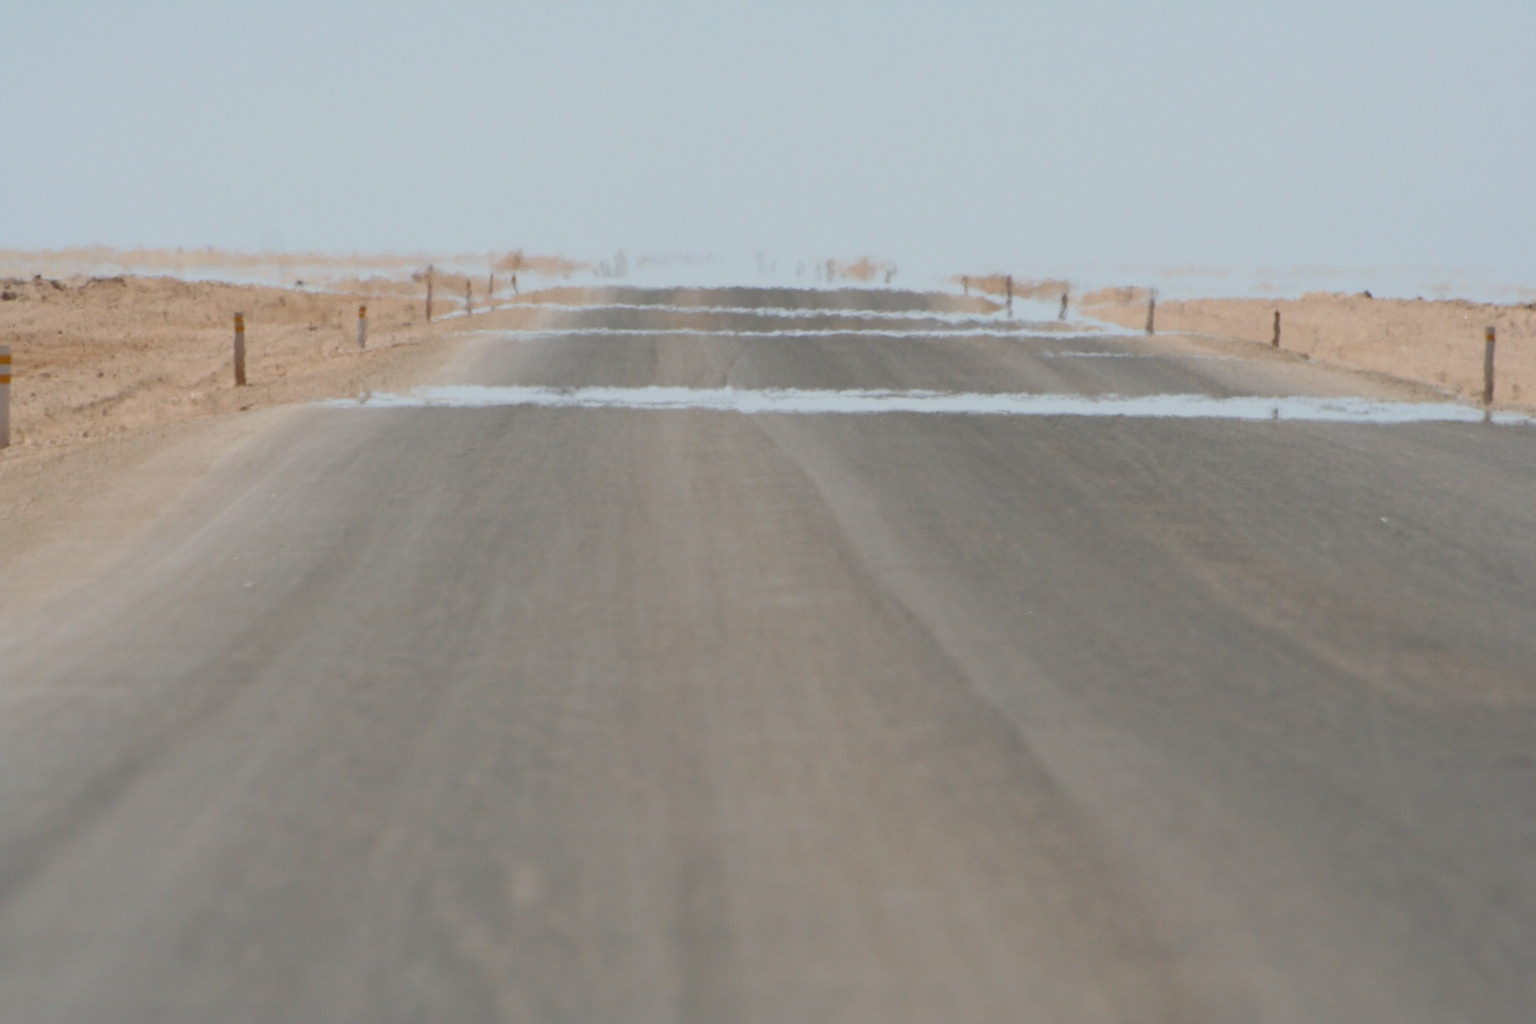 A mirage on a salt road